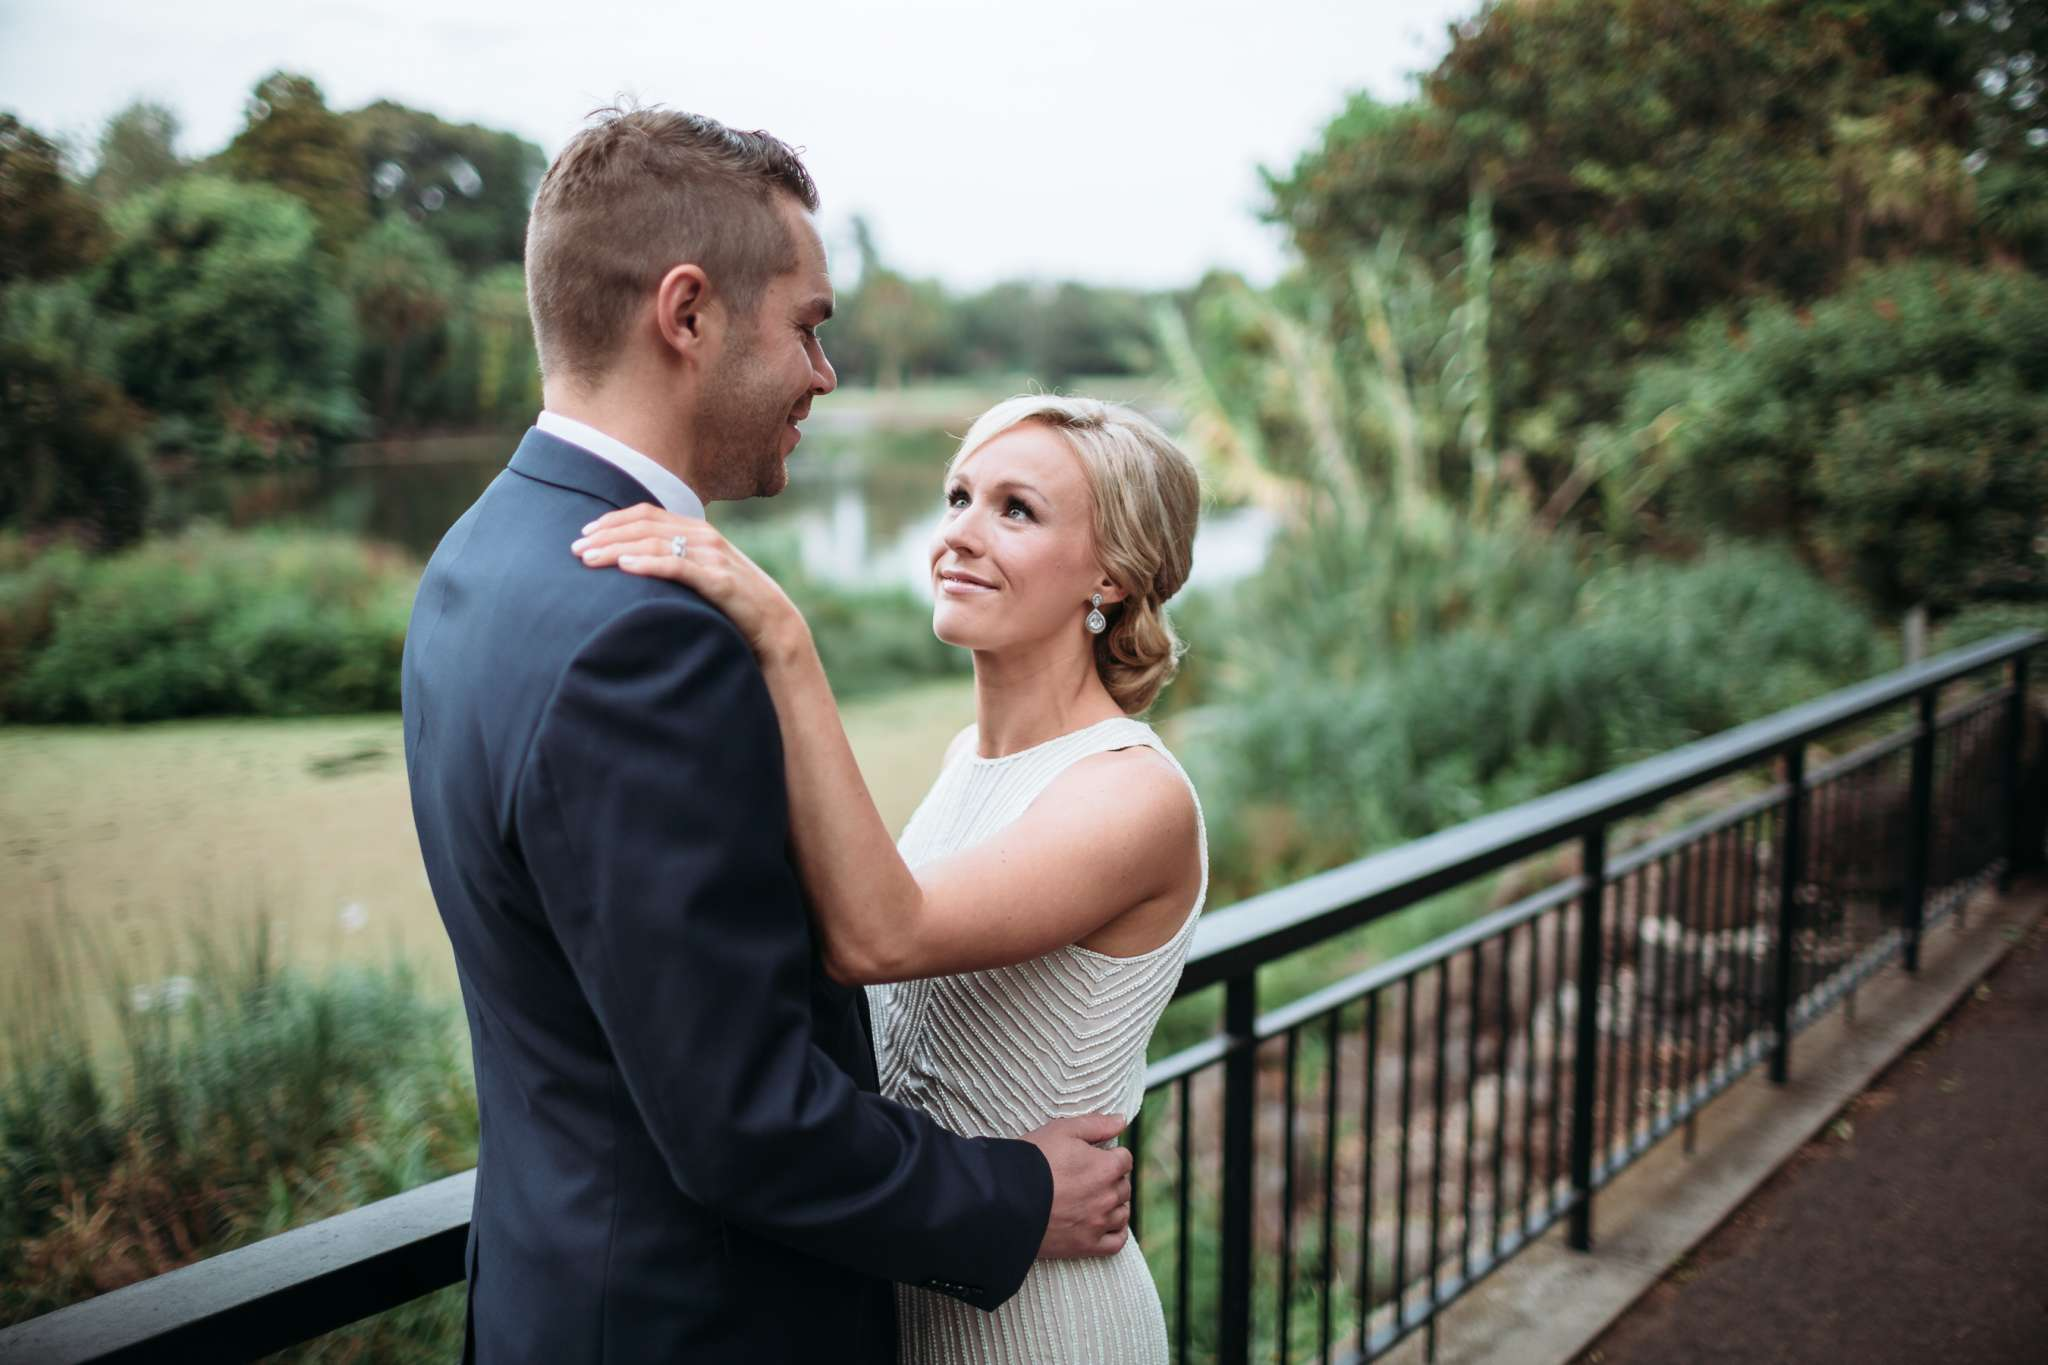 Wedding Photography Melbourne - Max & Megan 264